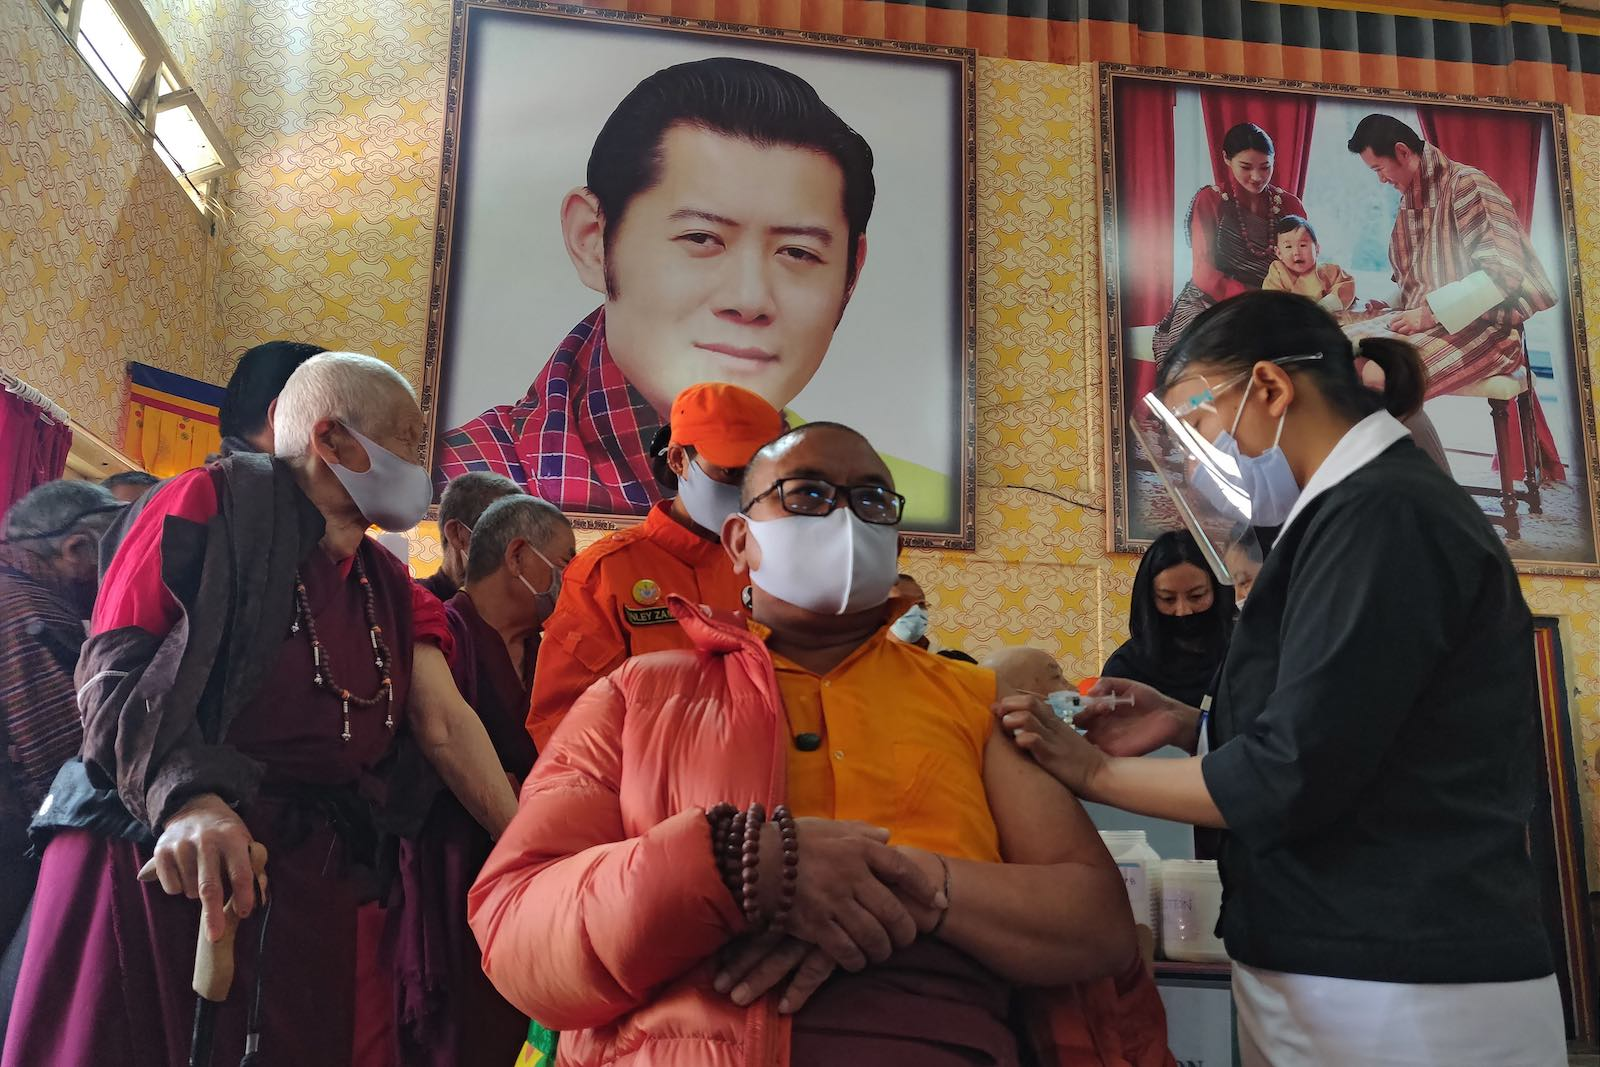 A Buddhist monk is vaccinated last month sitting in front of a portrait of Bhutan's King Jigme Khesar Namgyel Wangchuck (Upasana Dahal/AFP via Getty Images)